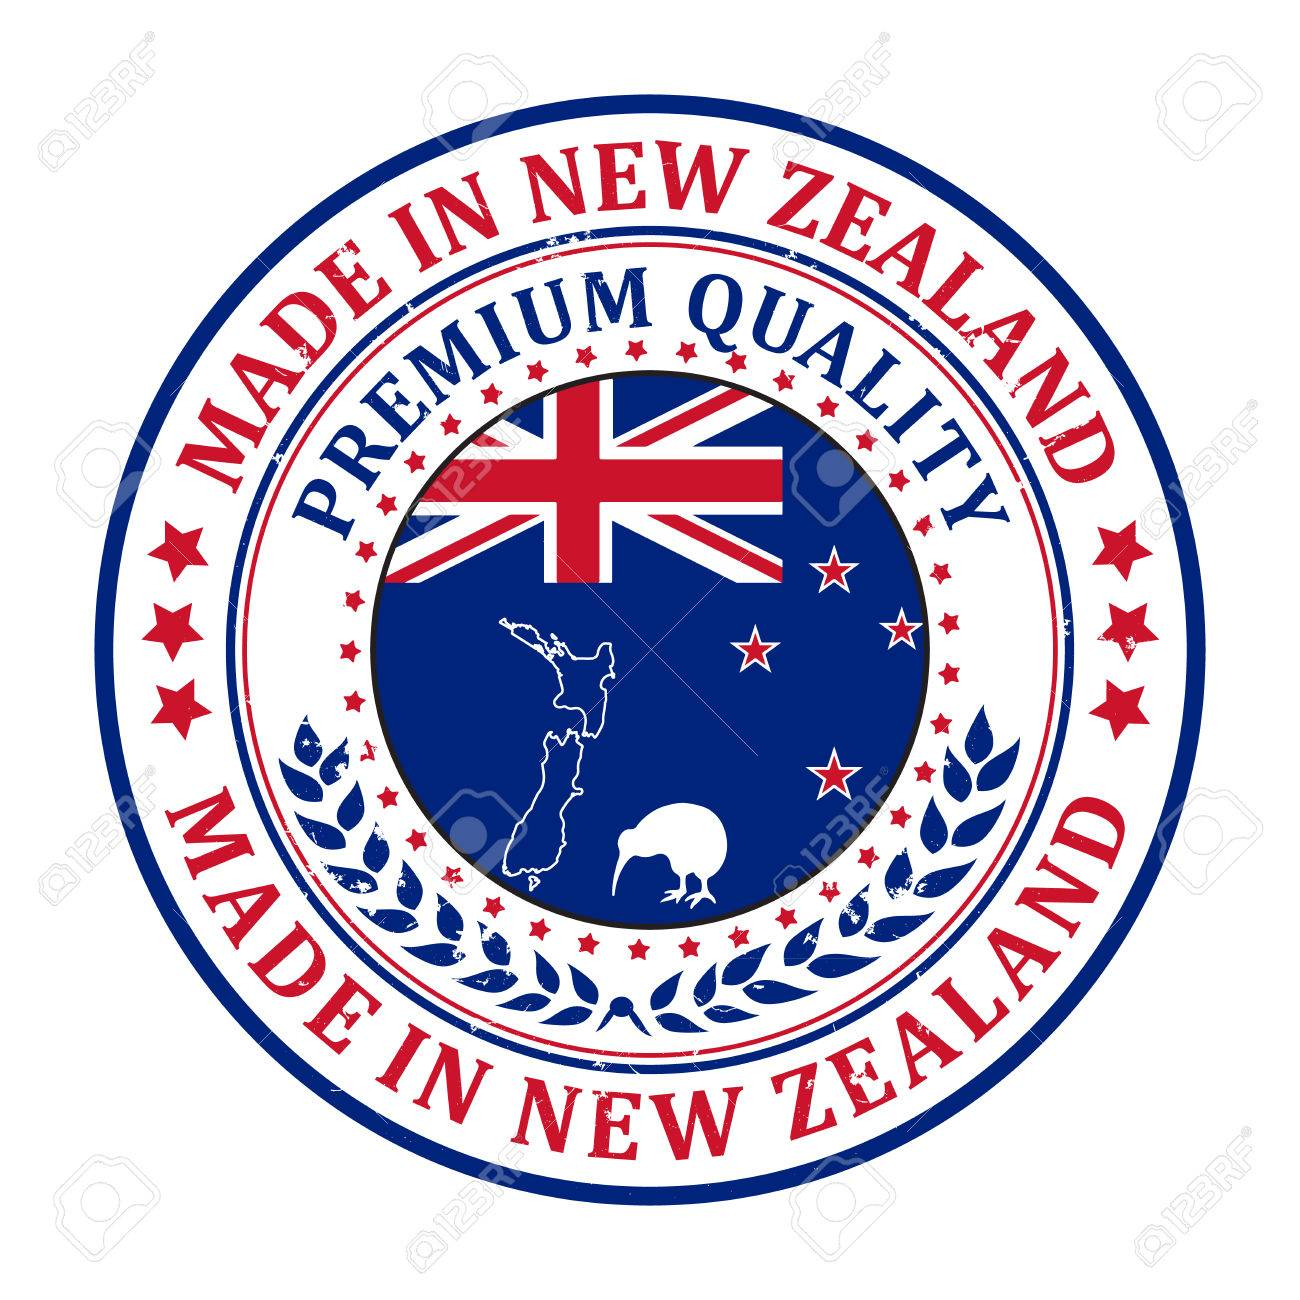 Made in New Zealand, Premium quality - stamp / label / sticker